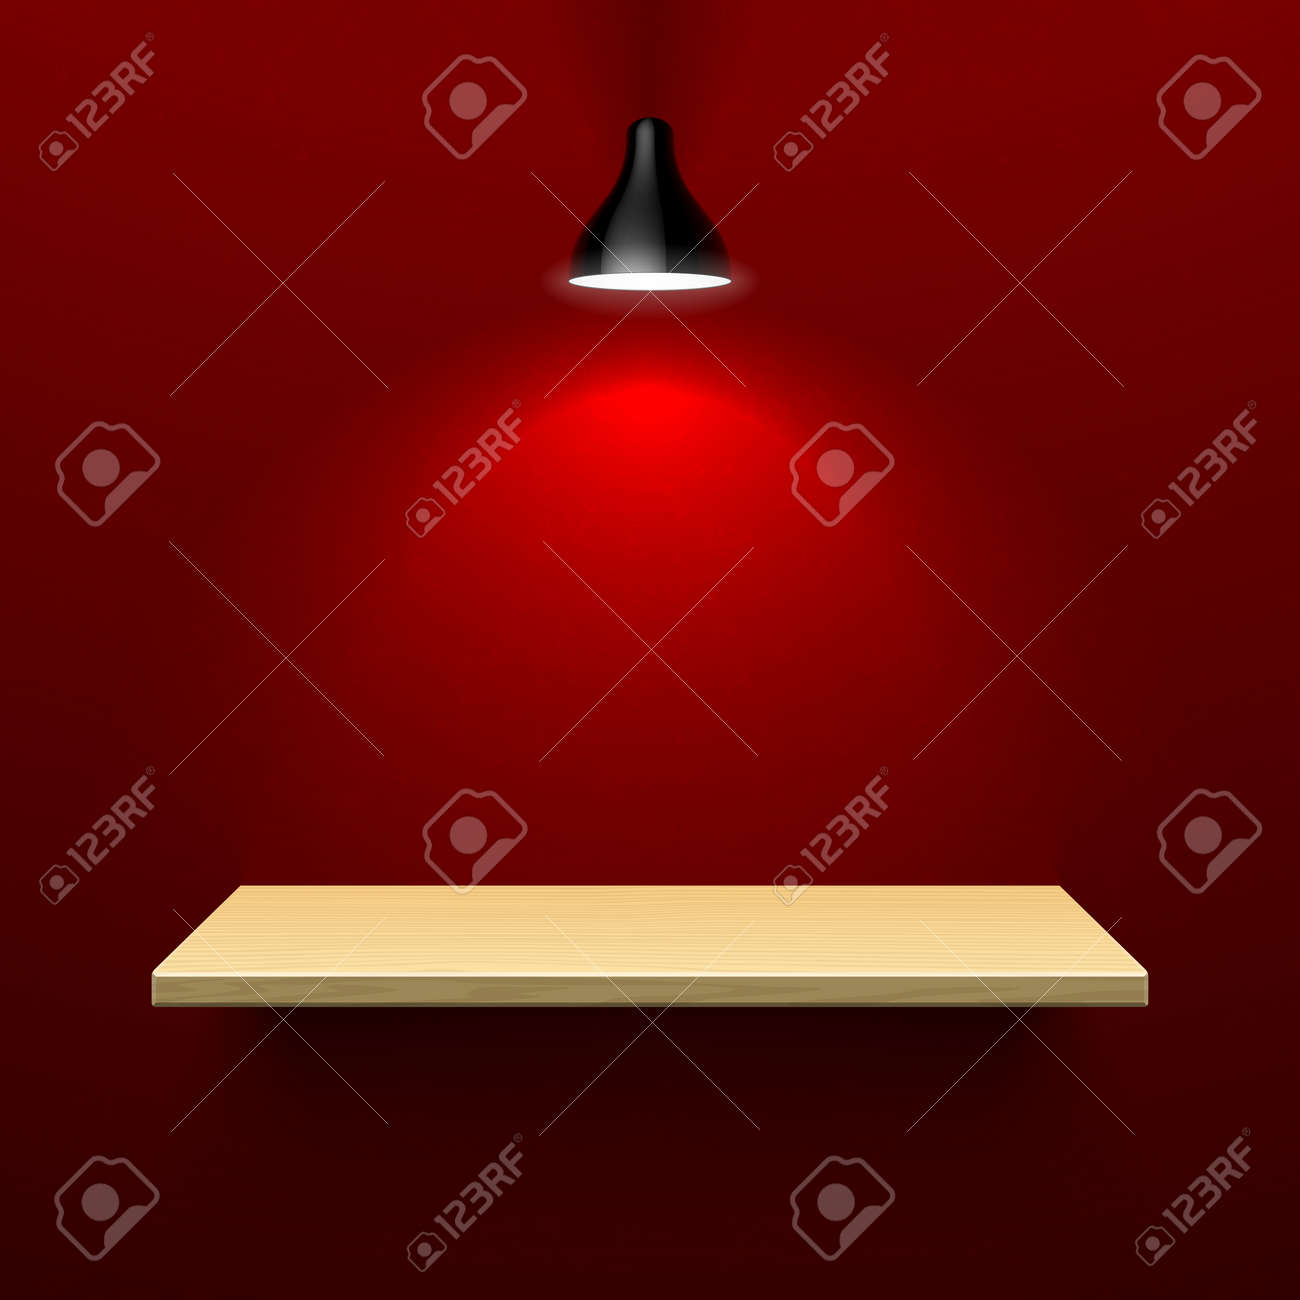 Wooden shelf illuminated by lamp Stock Vector - 23796311